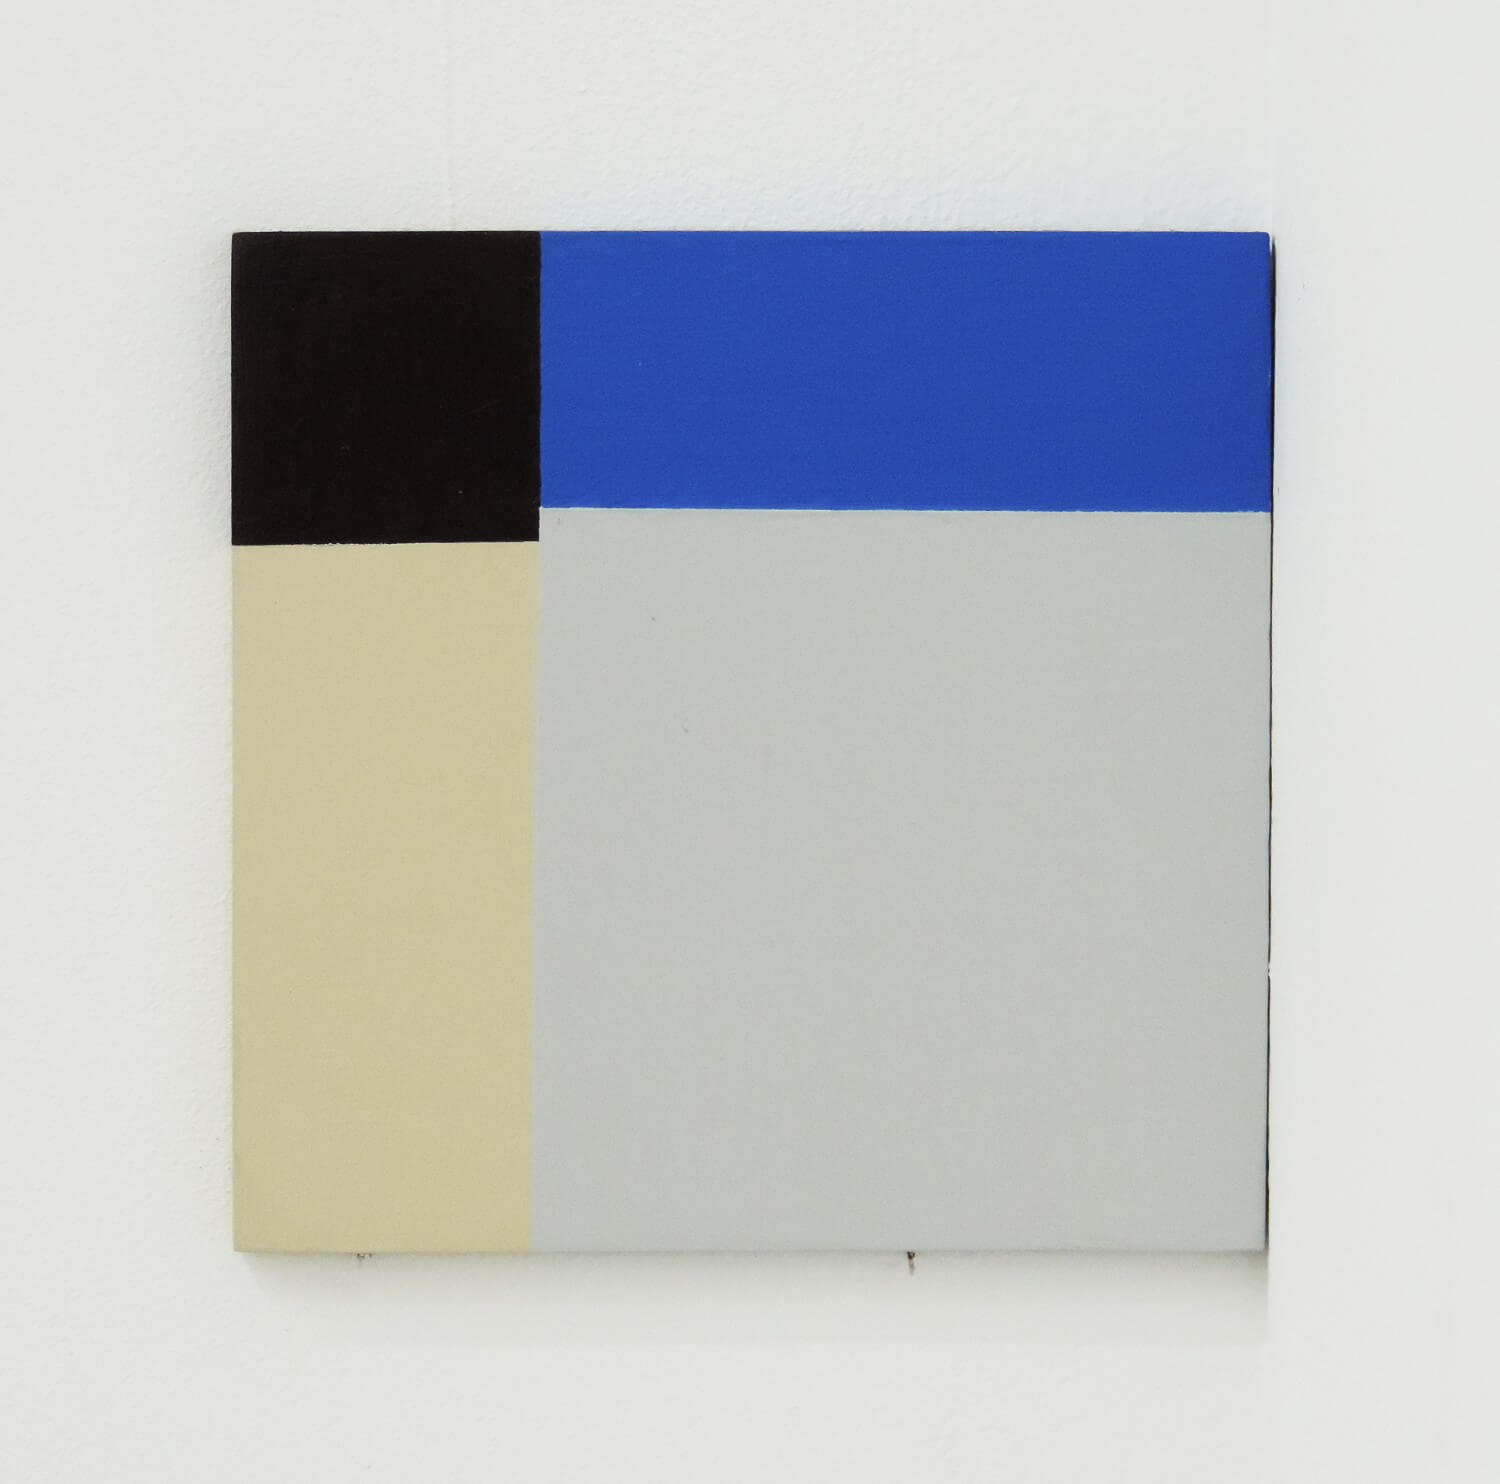 <strong>Untitled</strong>|acrylic paint on board|94 × 92 x 5 mm|2016